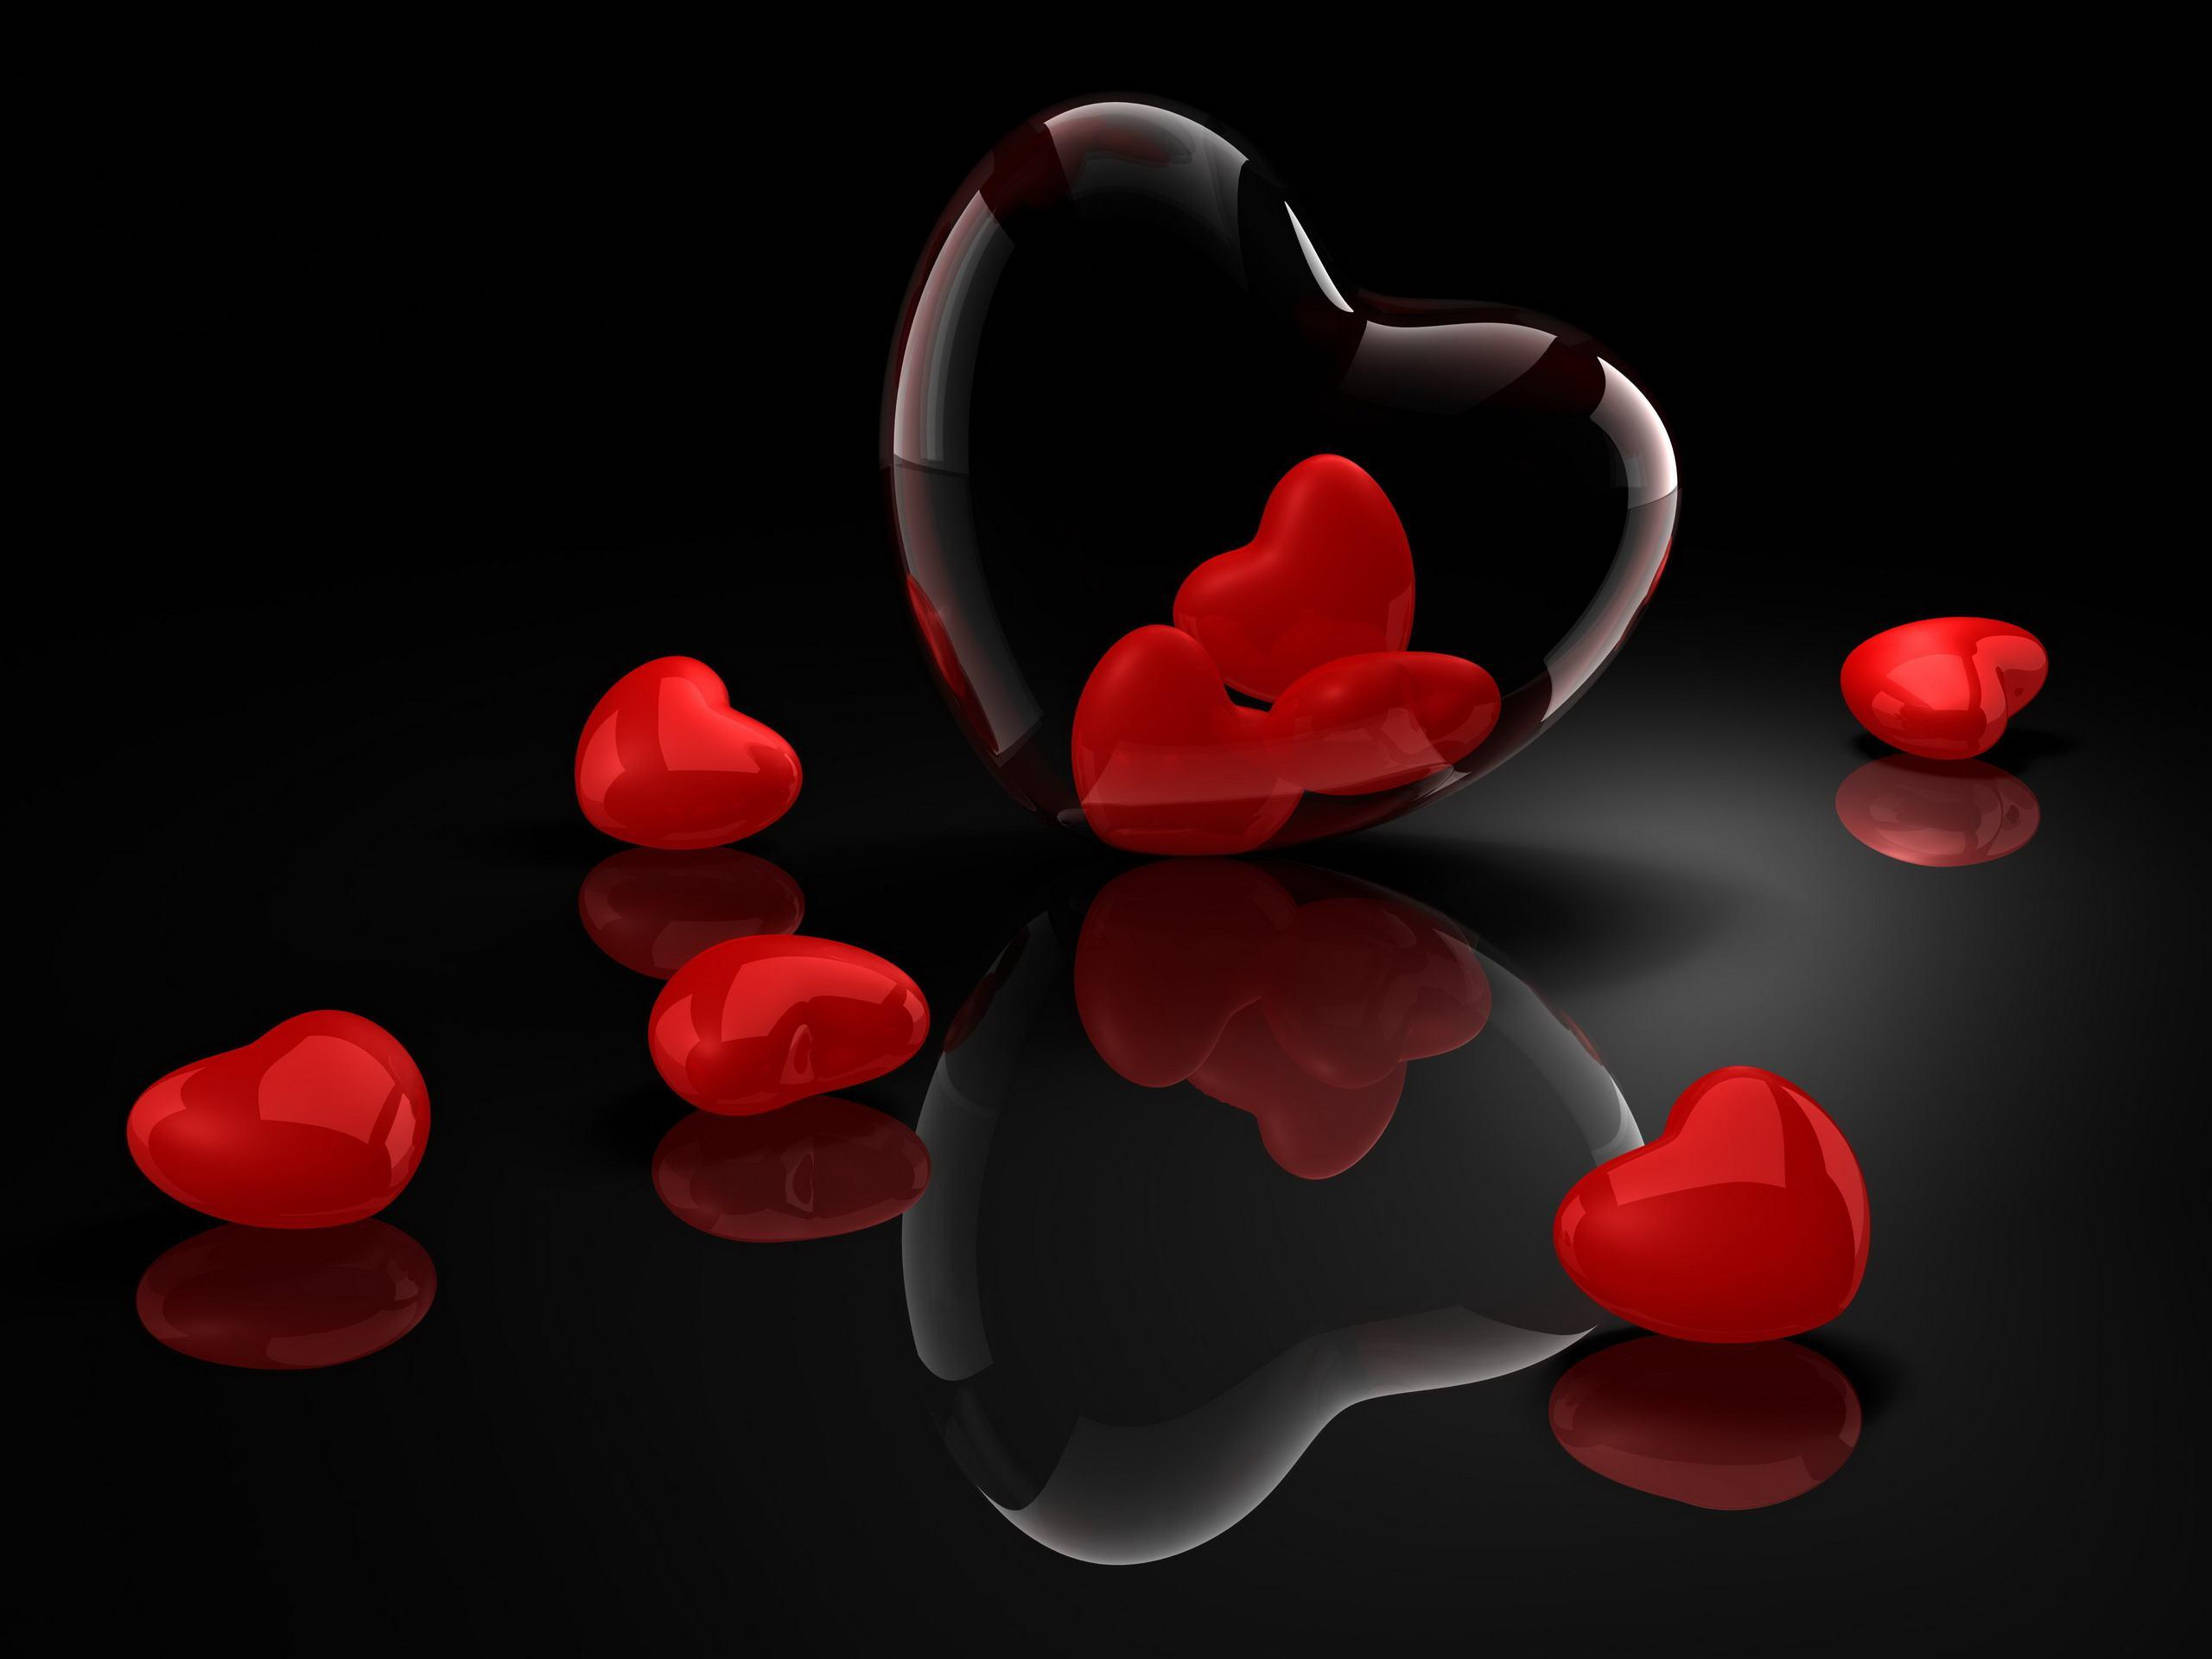 Love Wallpaper Black Background : Heart Black Backgrounds - Wallpaper cave